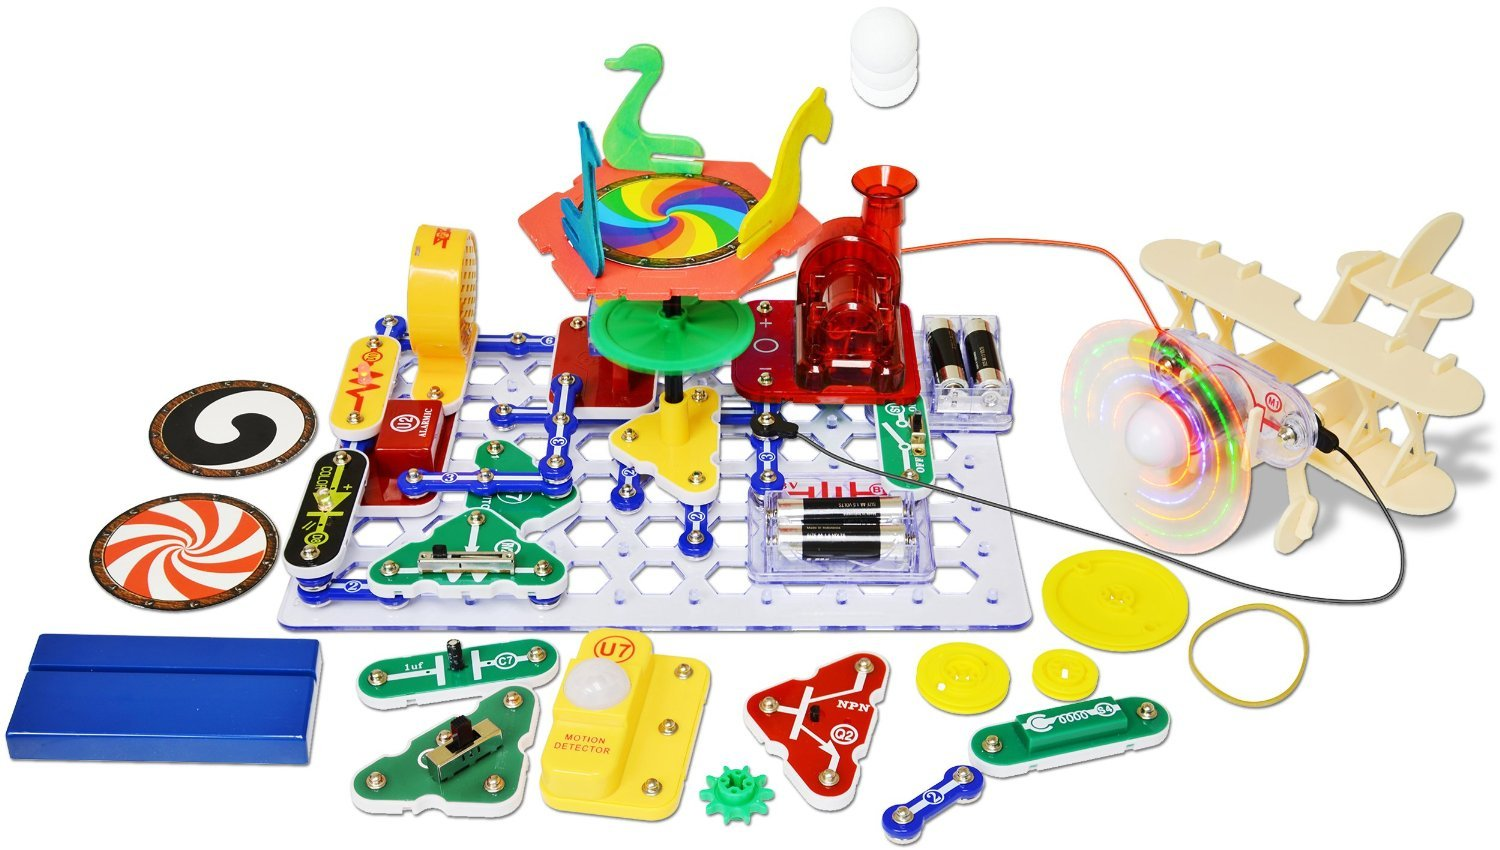 Snap Circuits Motion Electronics Exploration Kit | Over 165 Exciting STEM Projects | 4-Color Project Manual | 50+ Snap Modules | Unlimited Fun by Snap Circuits (Image #2)